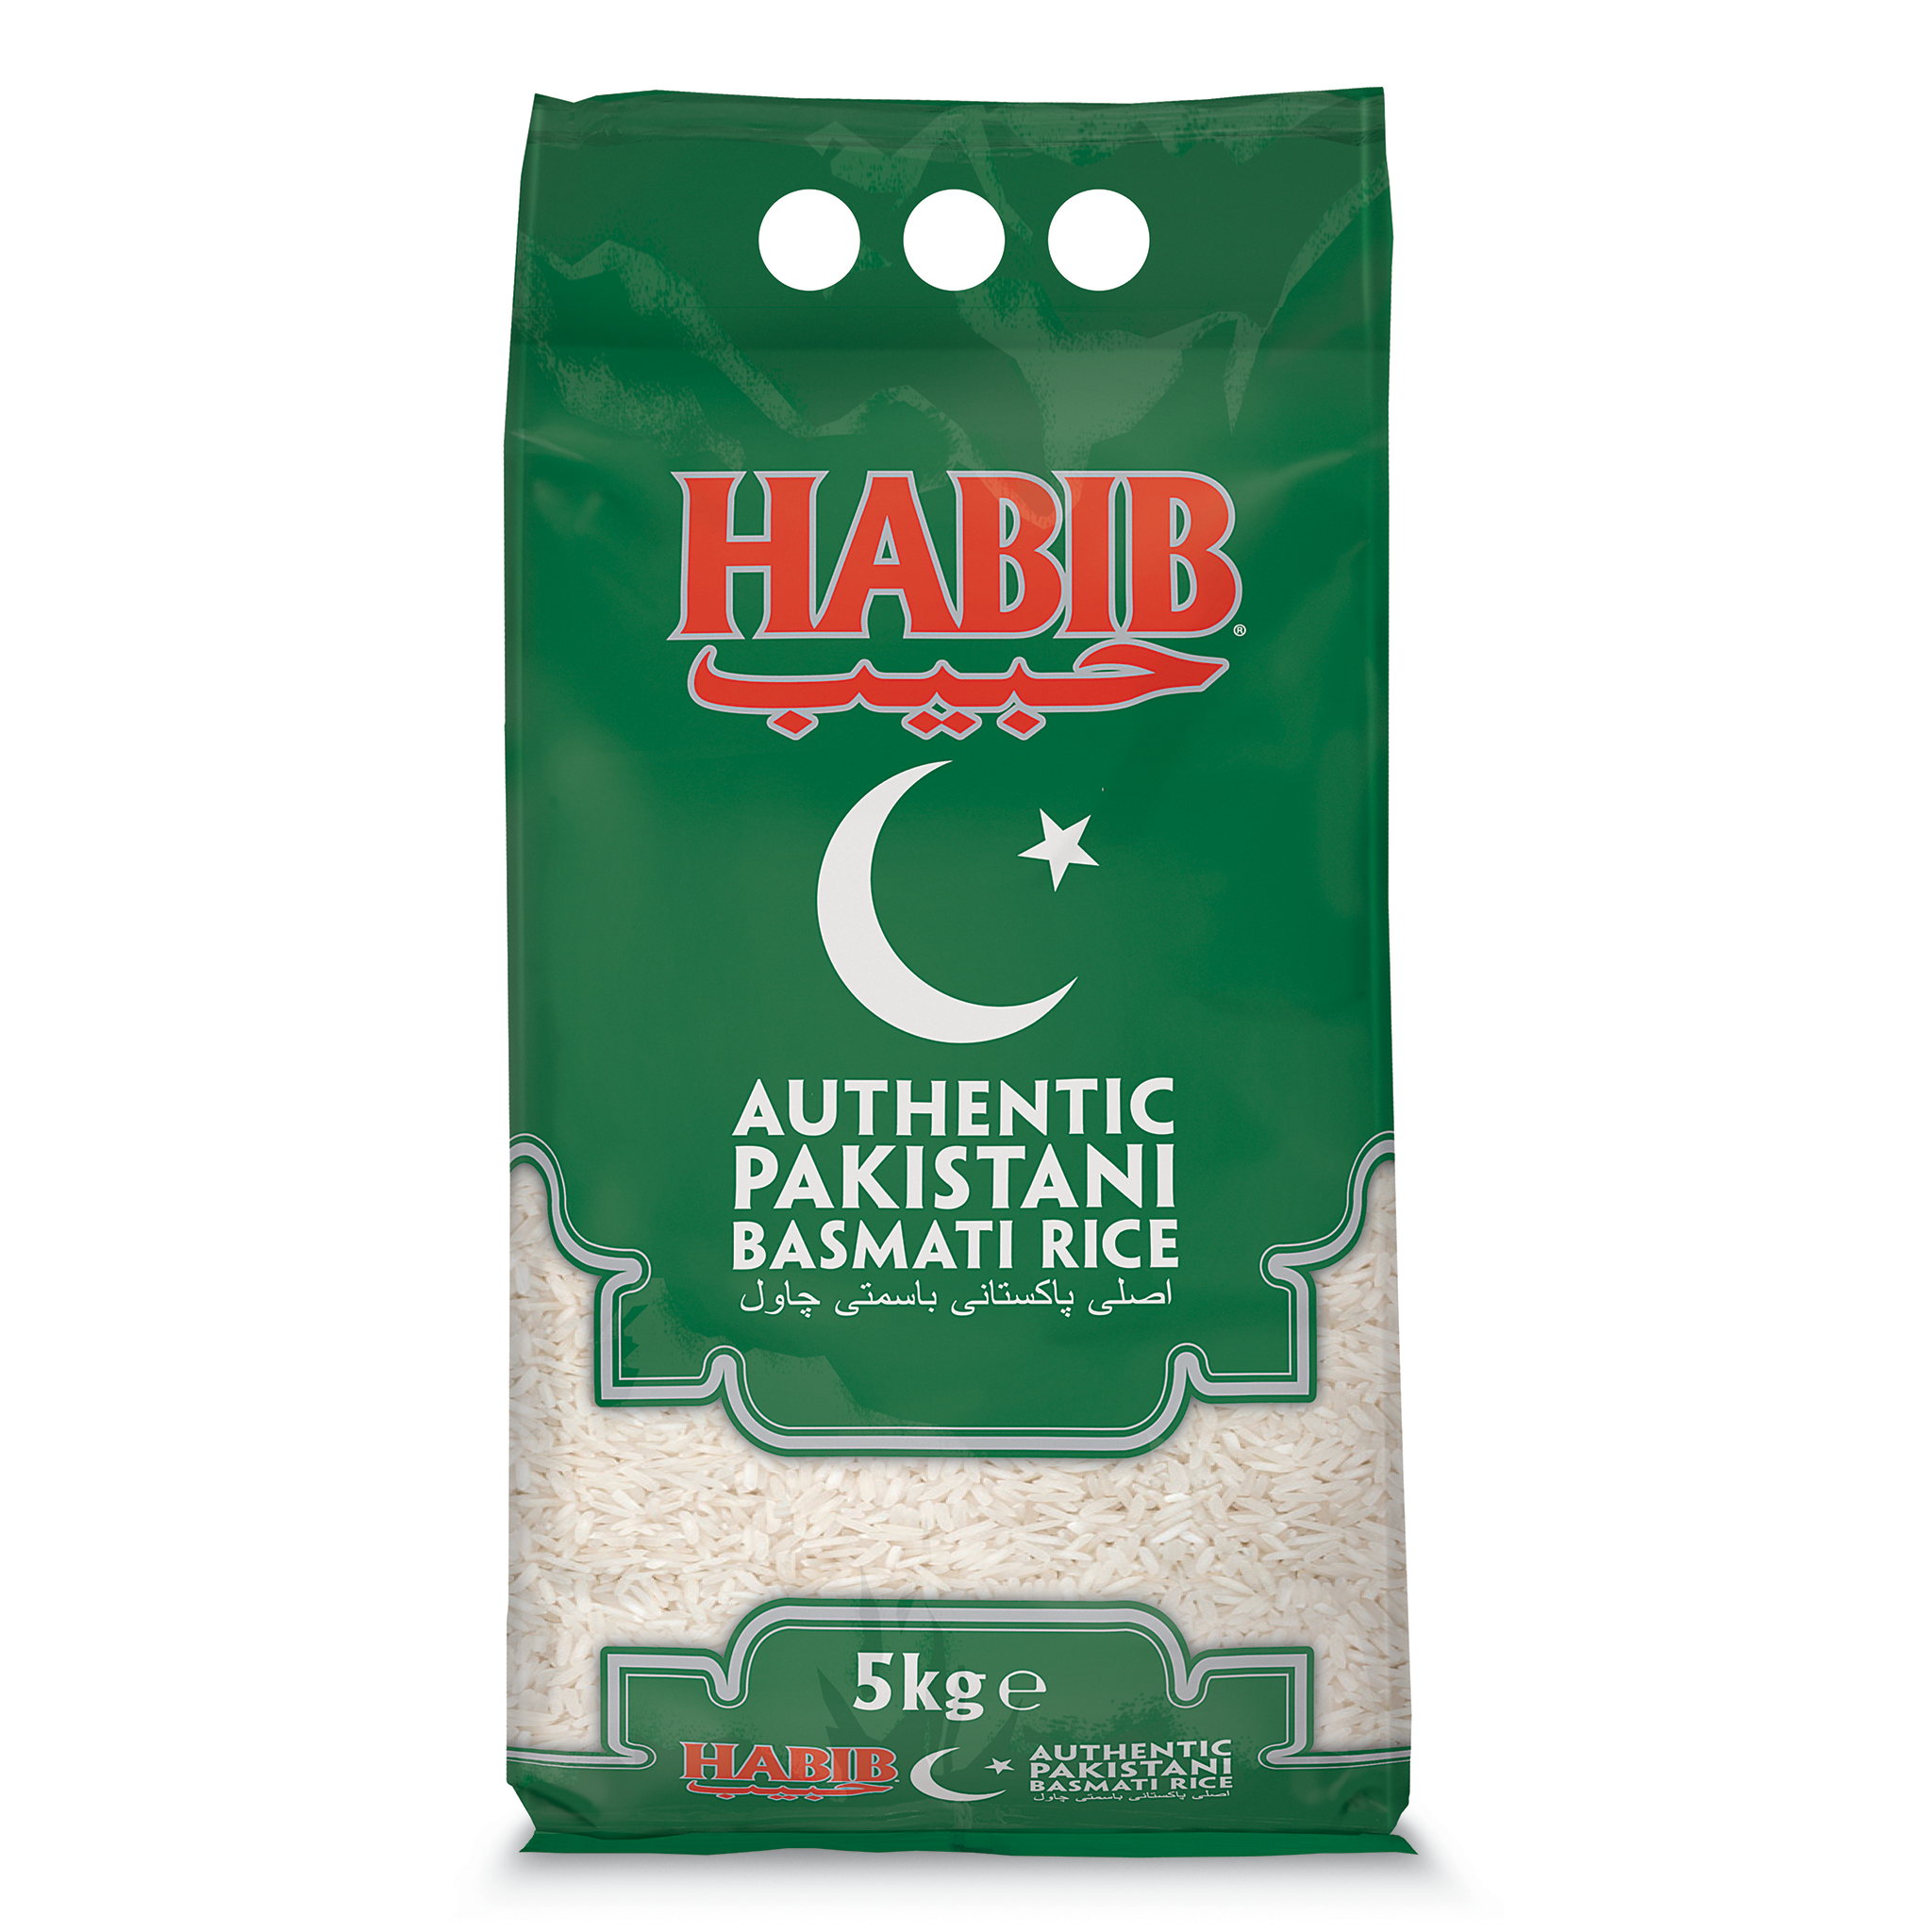 Basmati Rice 5kg by Habib